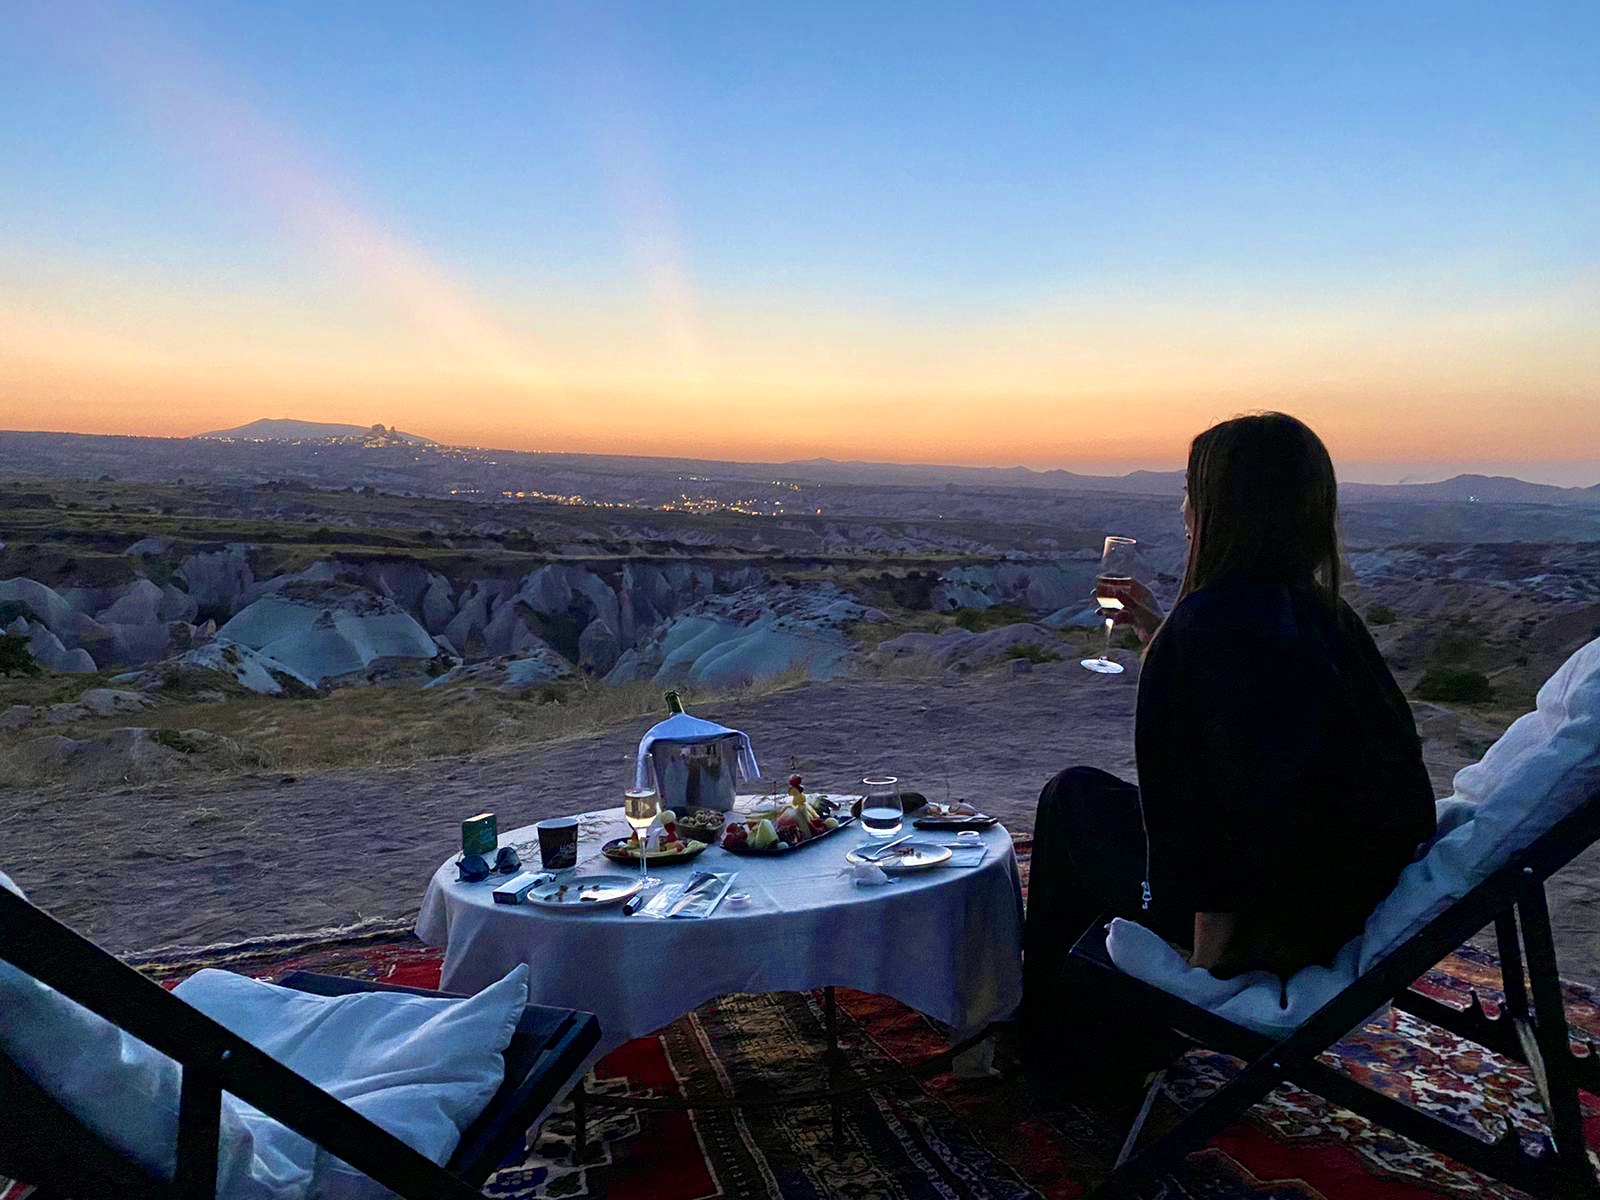 cappadocia-turkey-lustforthesublime